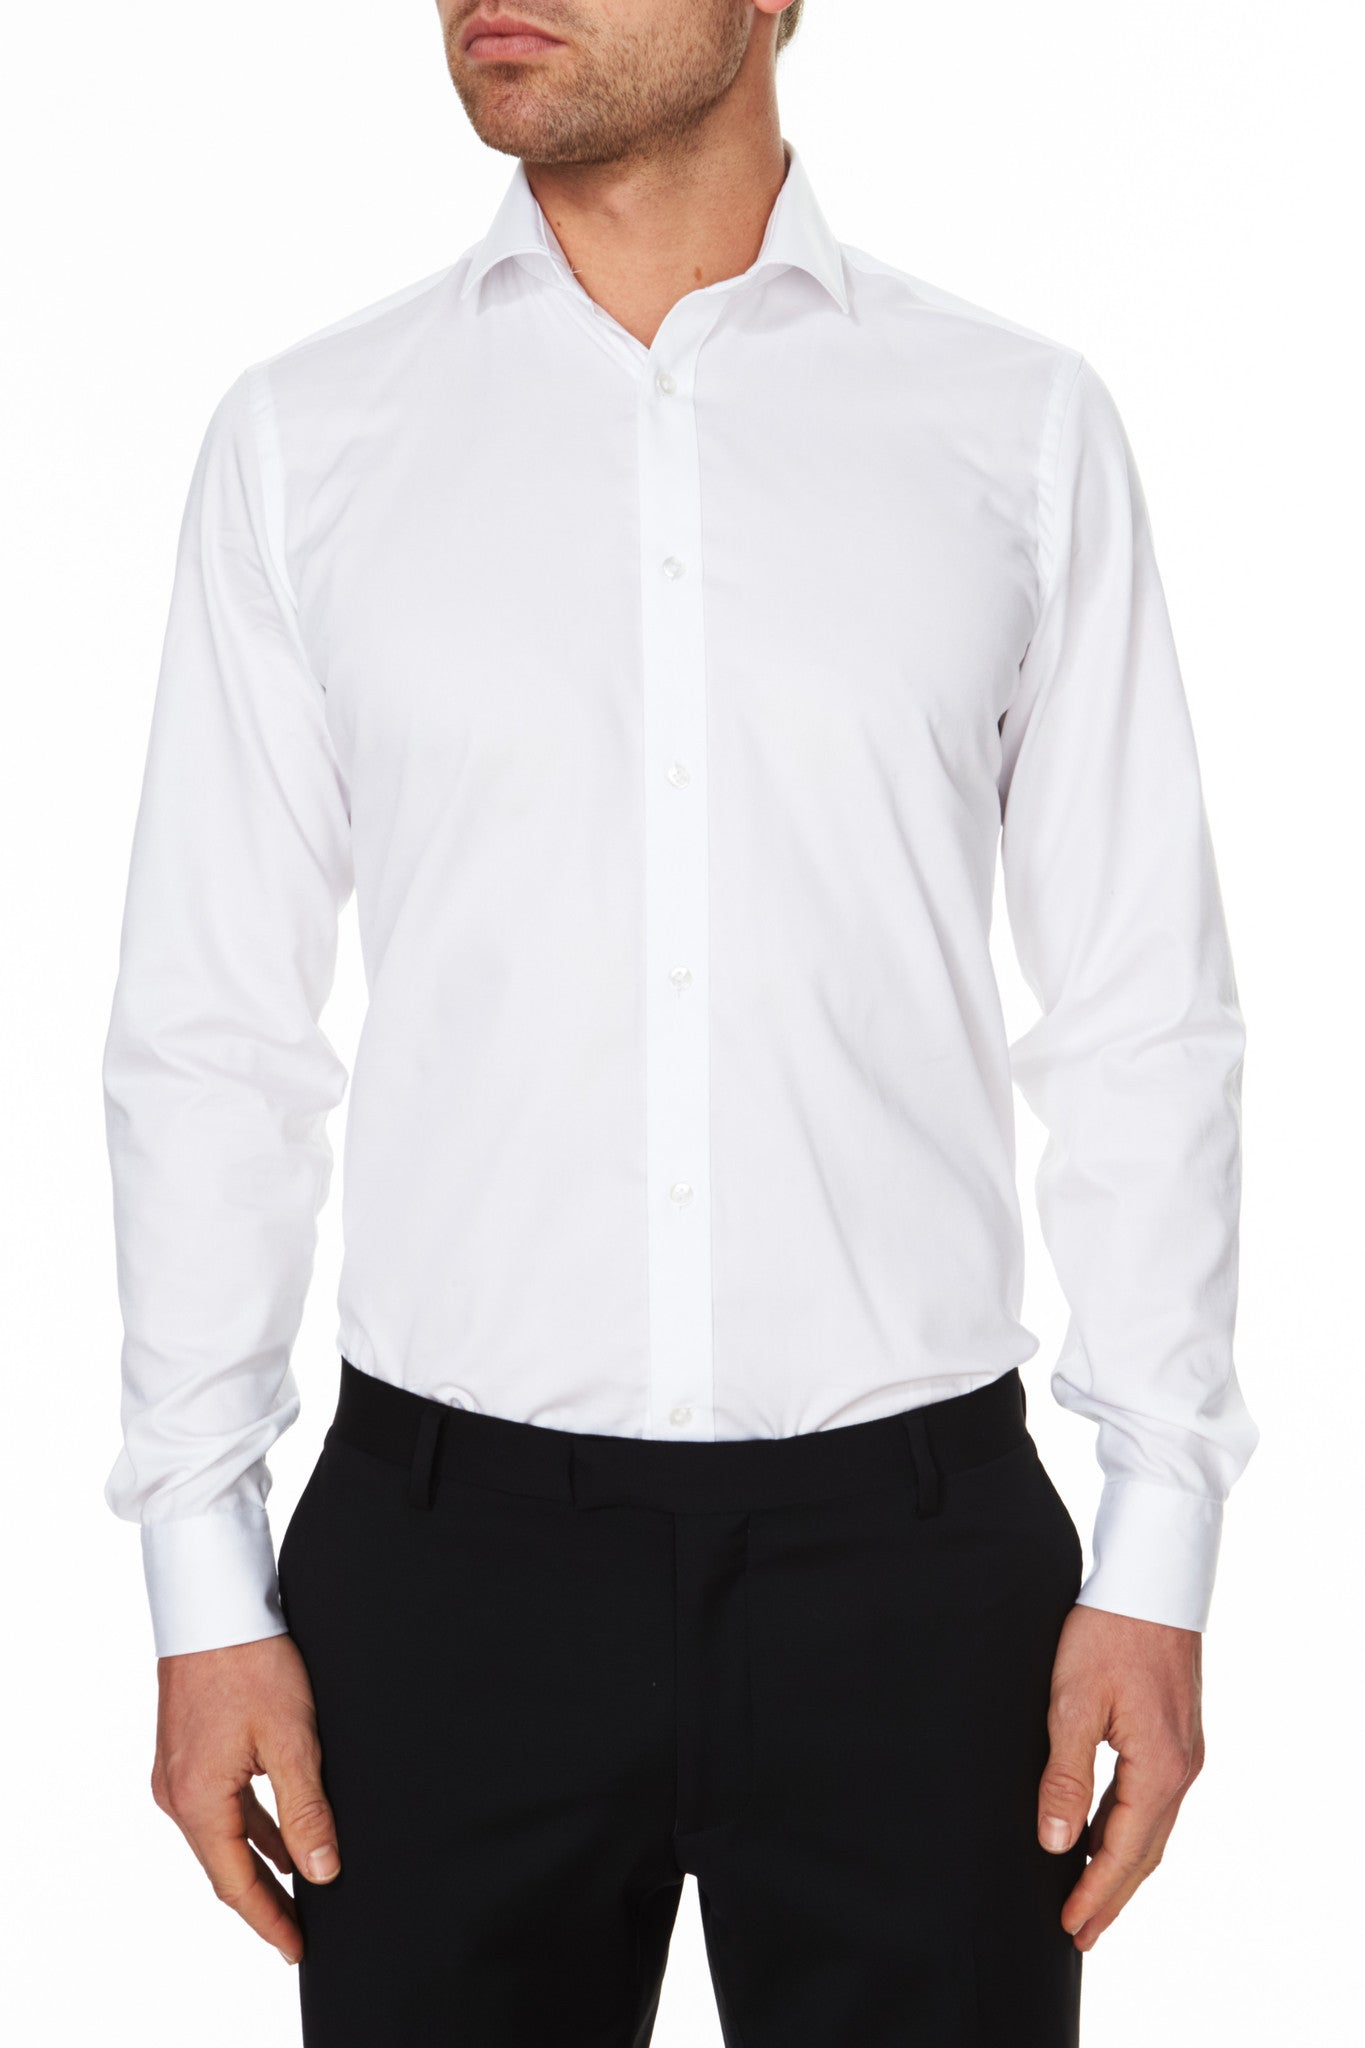 Pioneer Business Shirt White Front